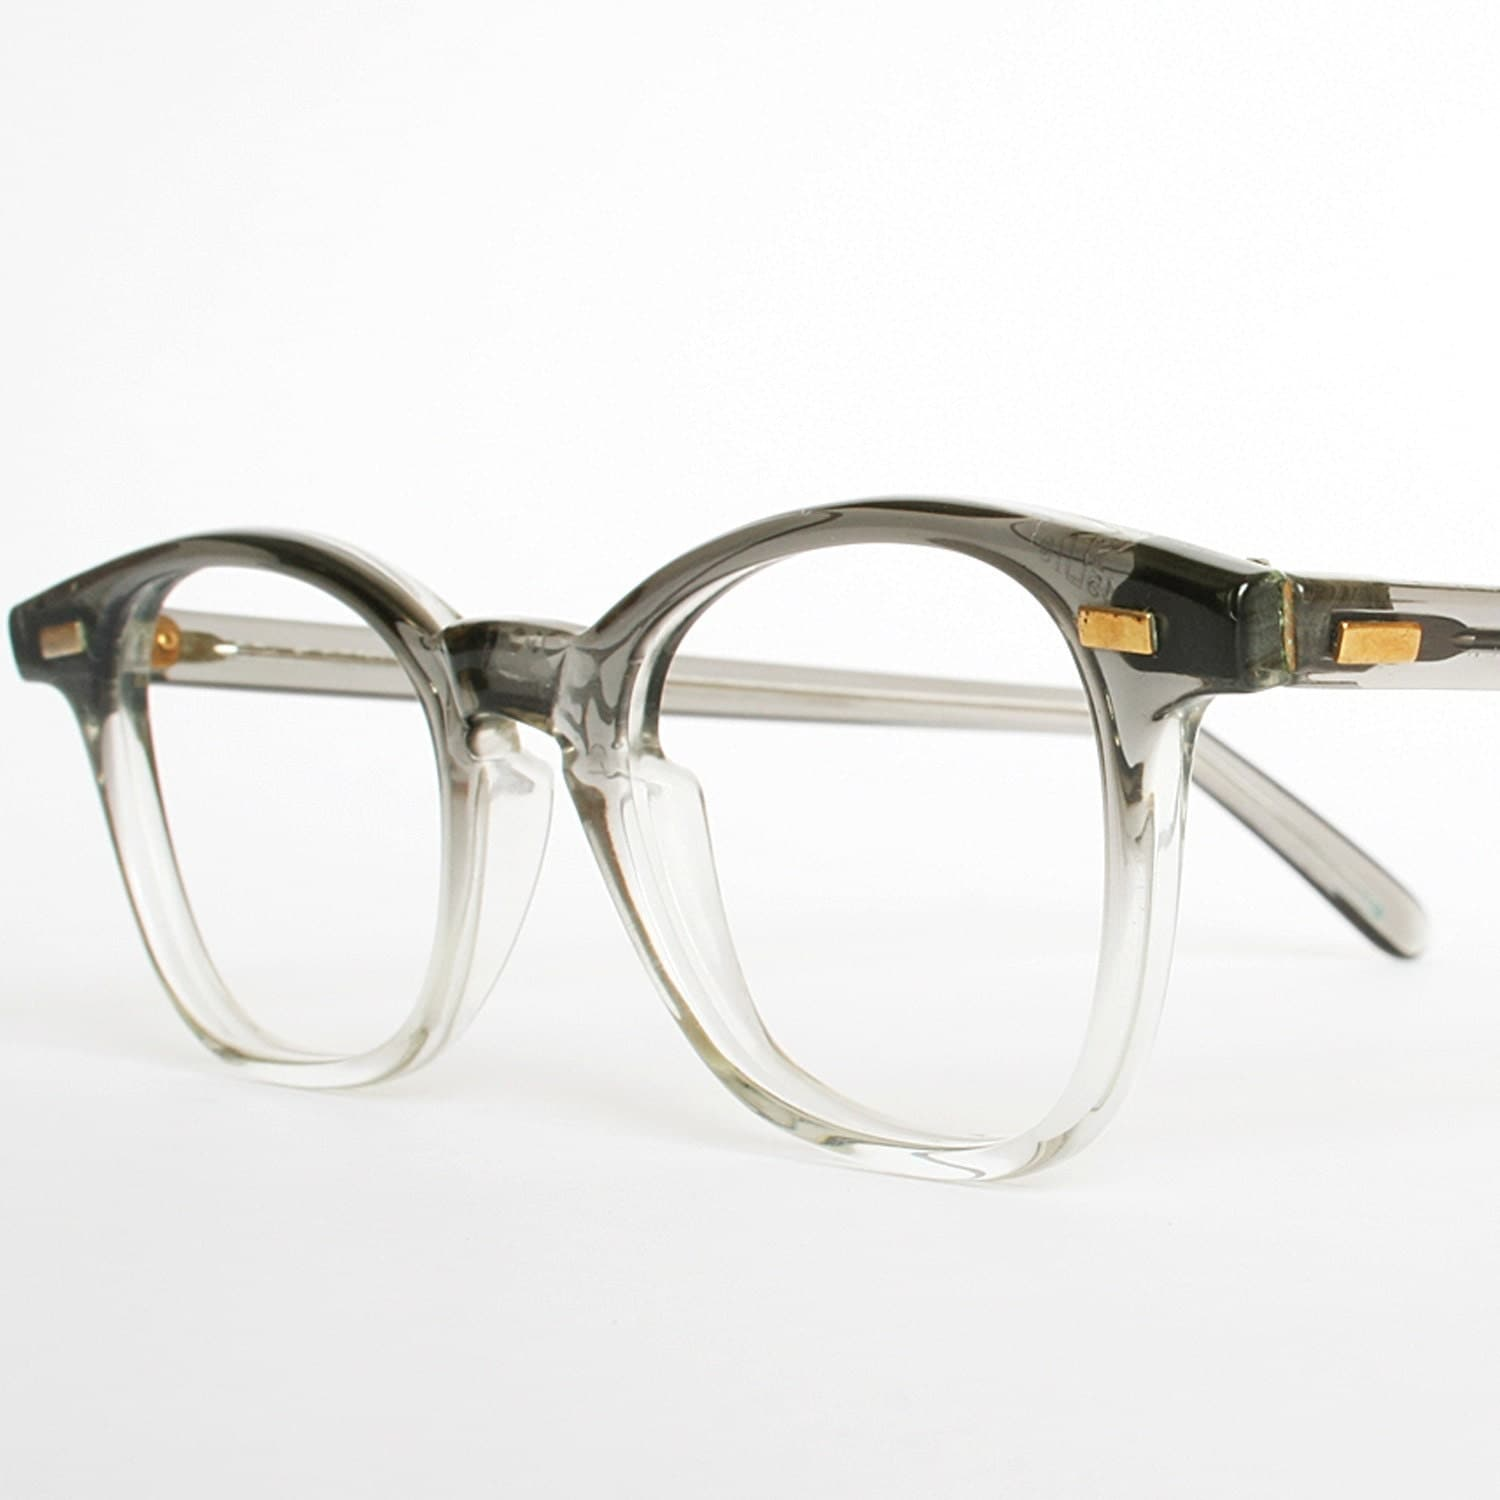 Men s Eyeglass Frames : Vintage 50s Mens Grey Fades Eyeglasses New Old Stock